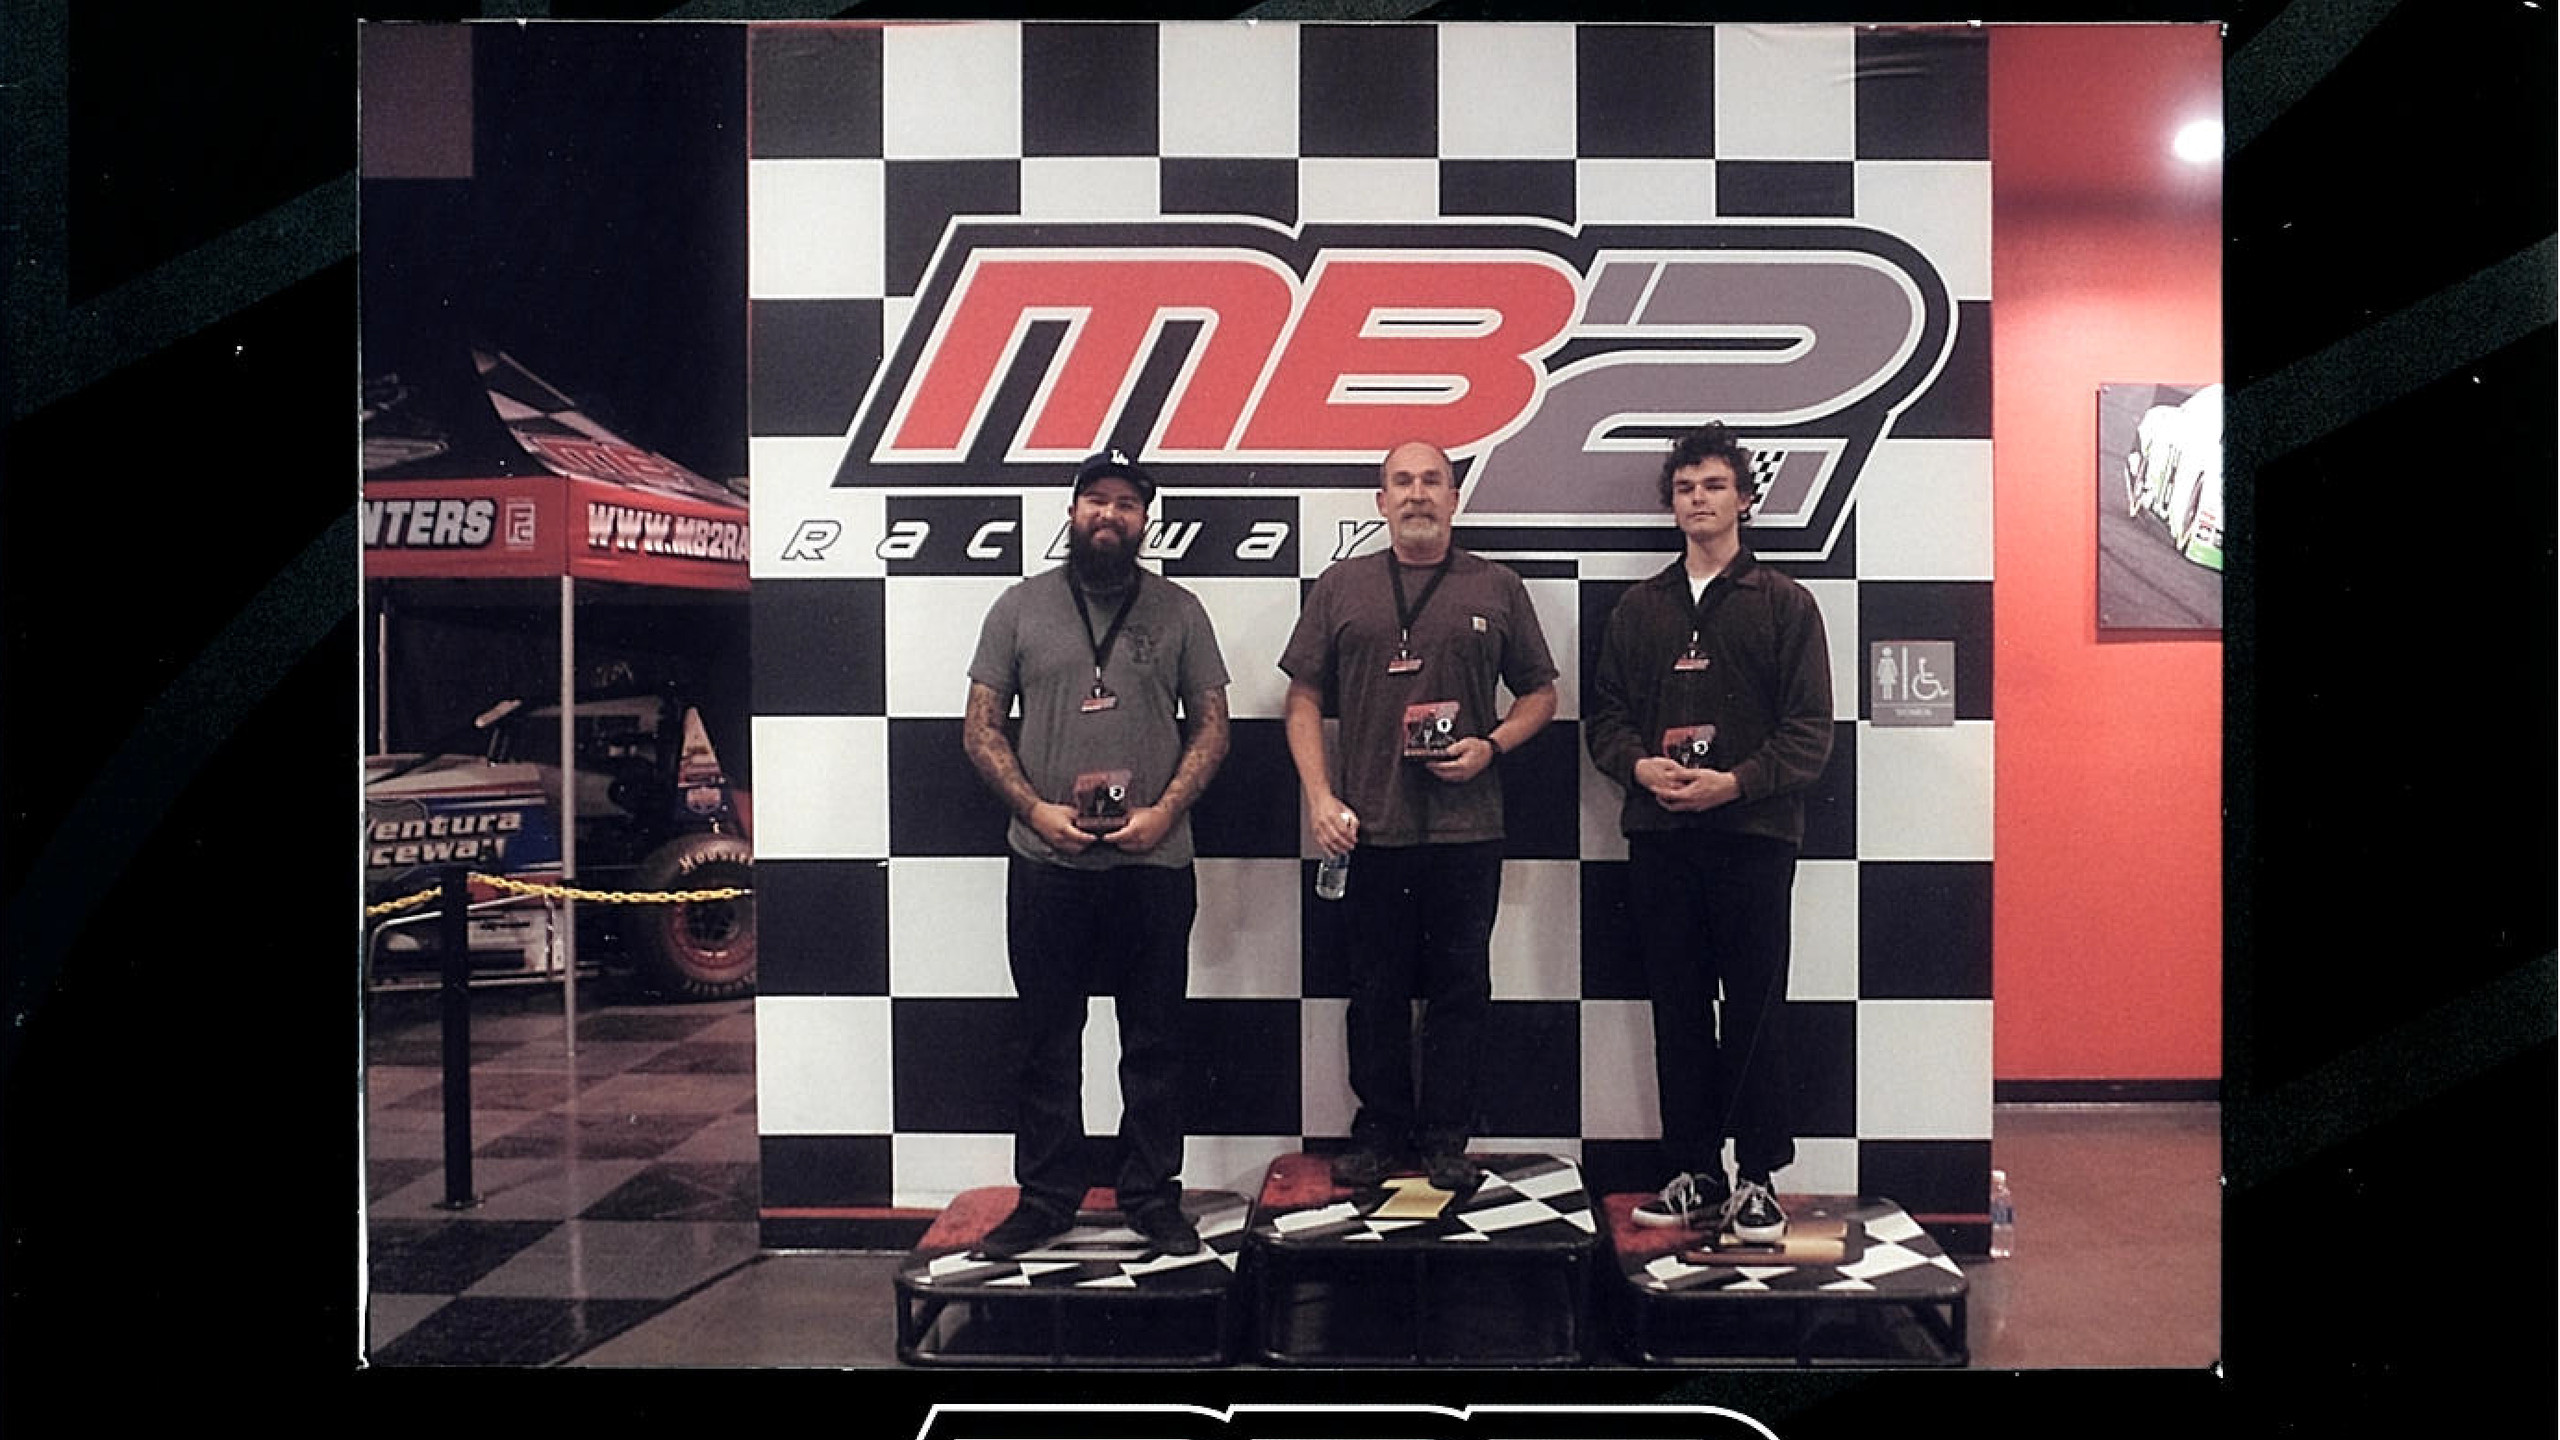 mb2_placed